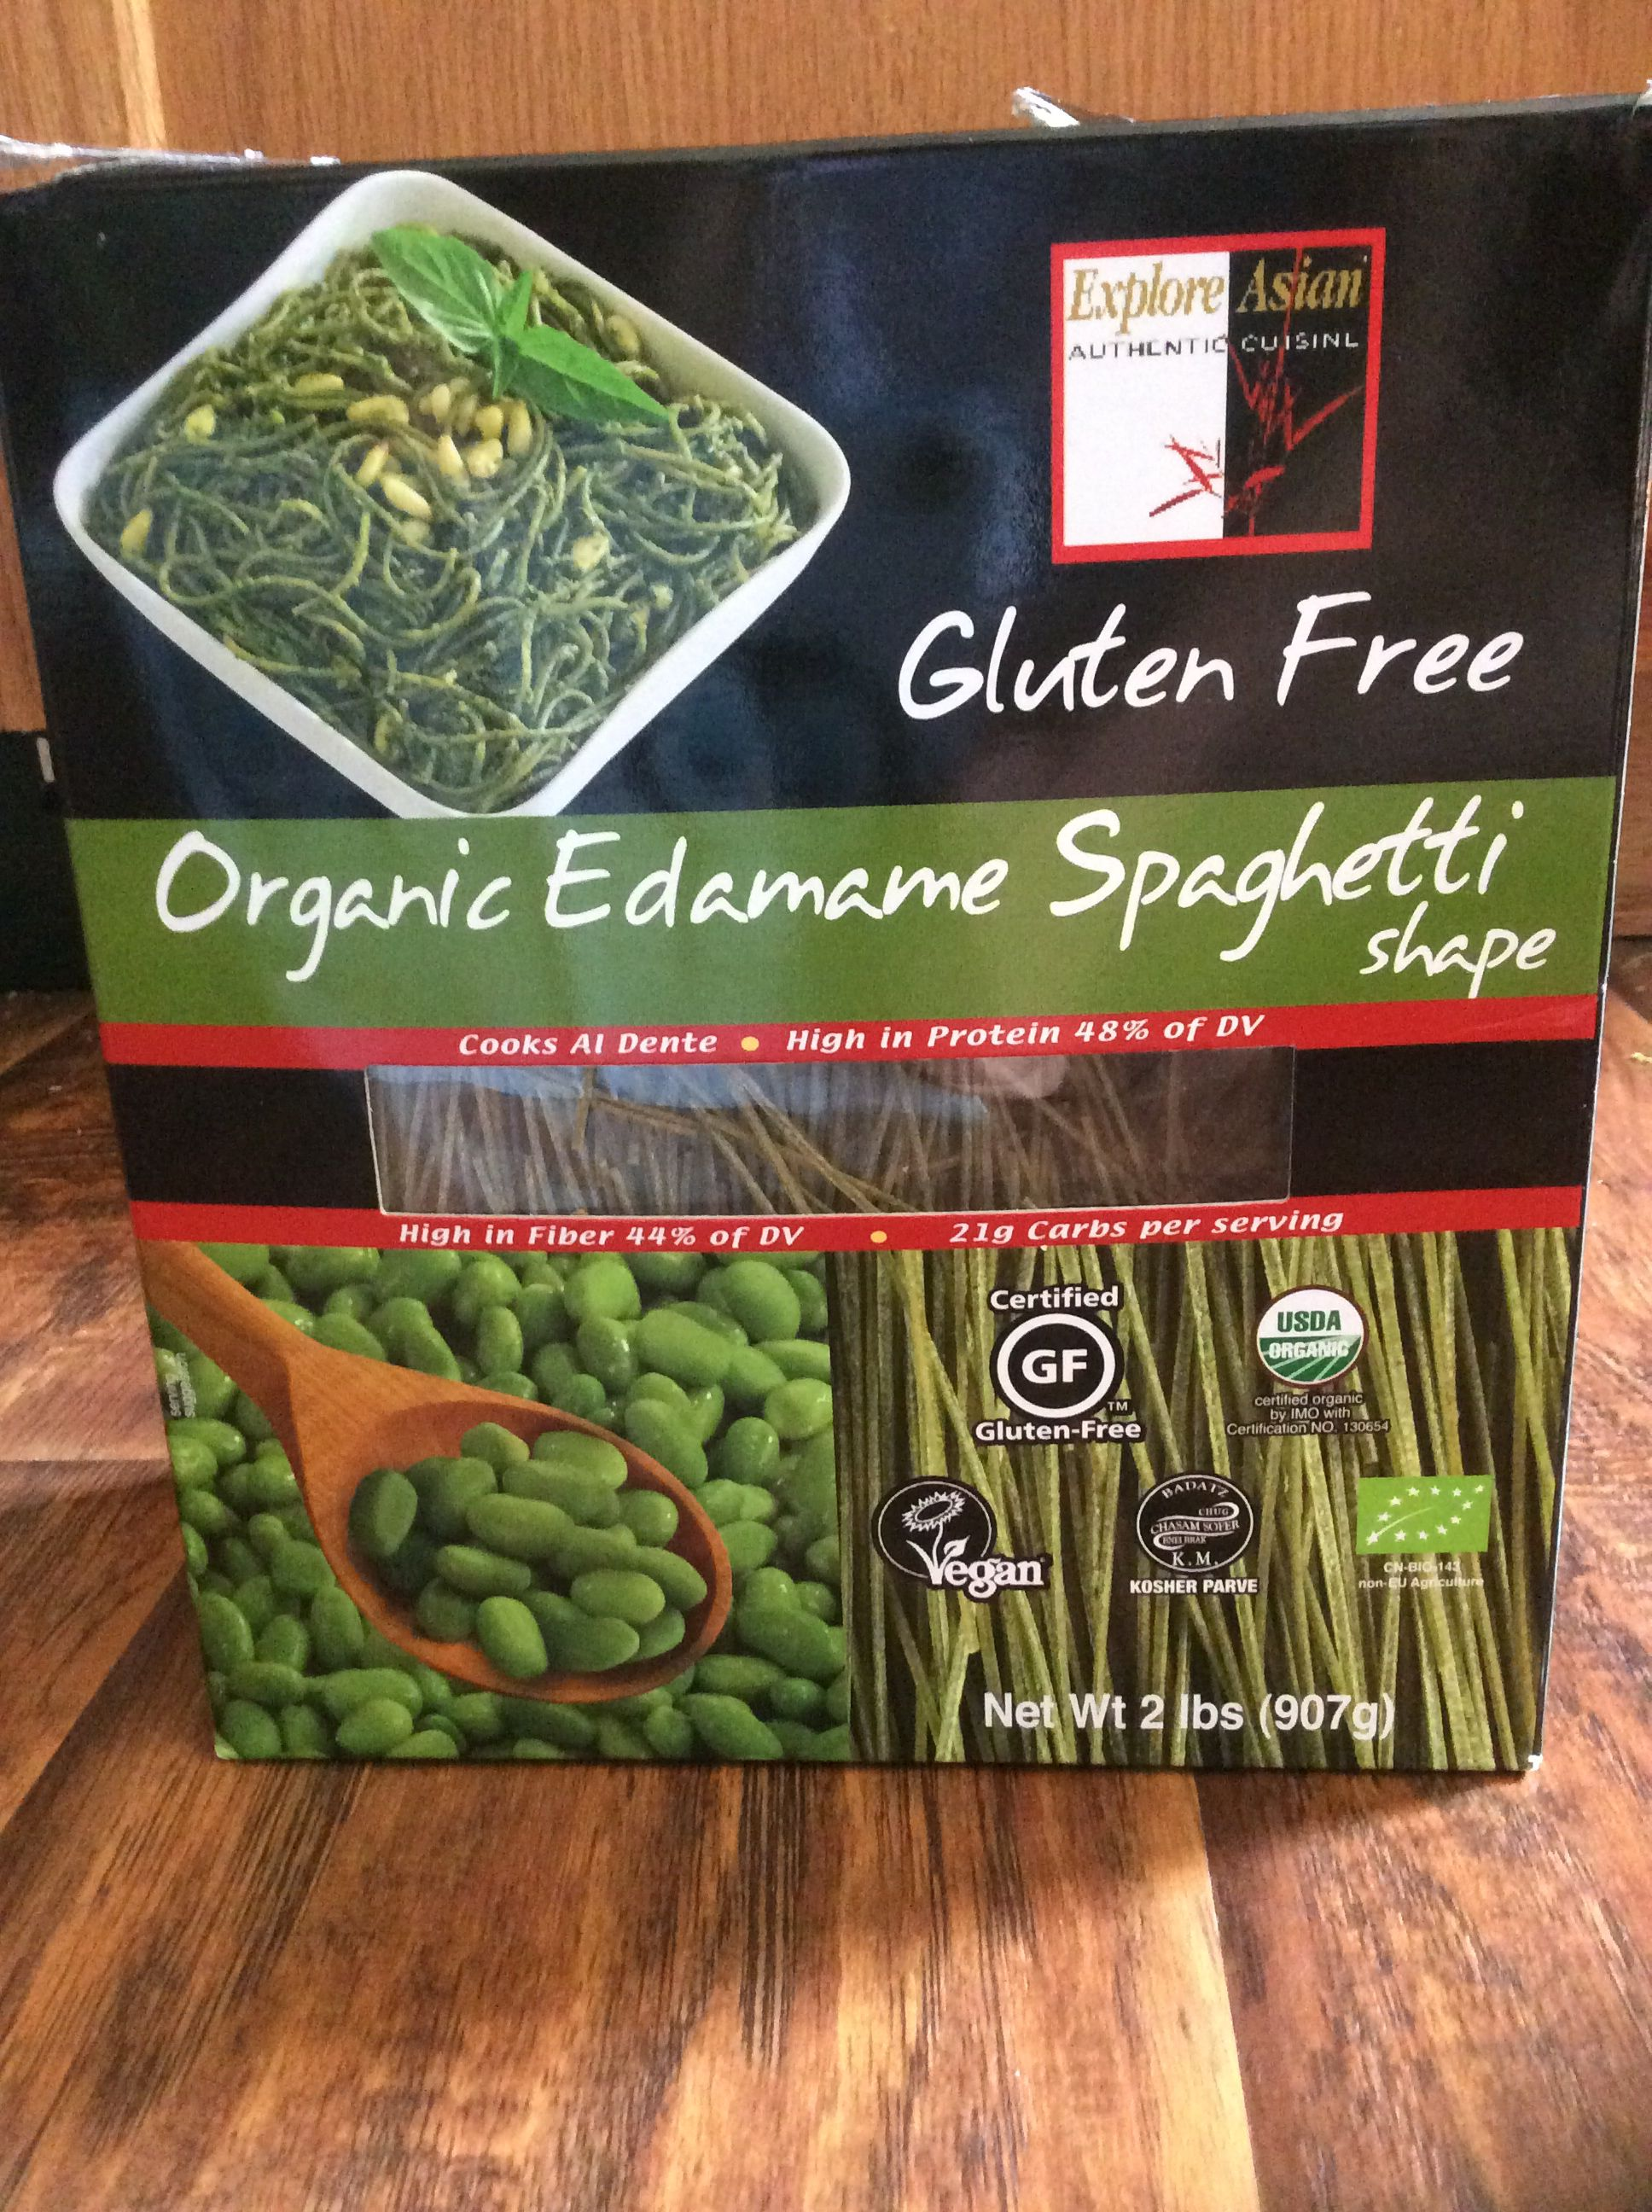 This Is A Tasty And Gluten Free Spaghetti That Is Very Affordable